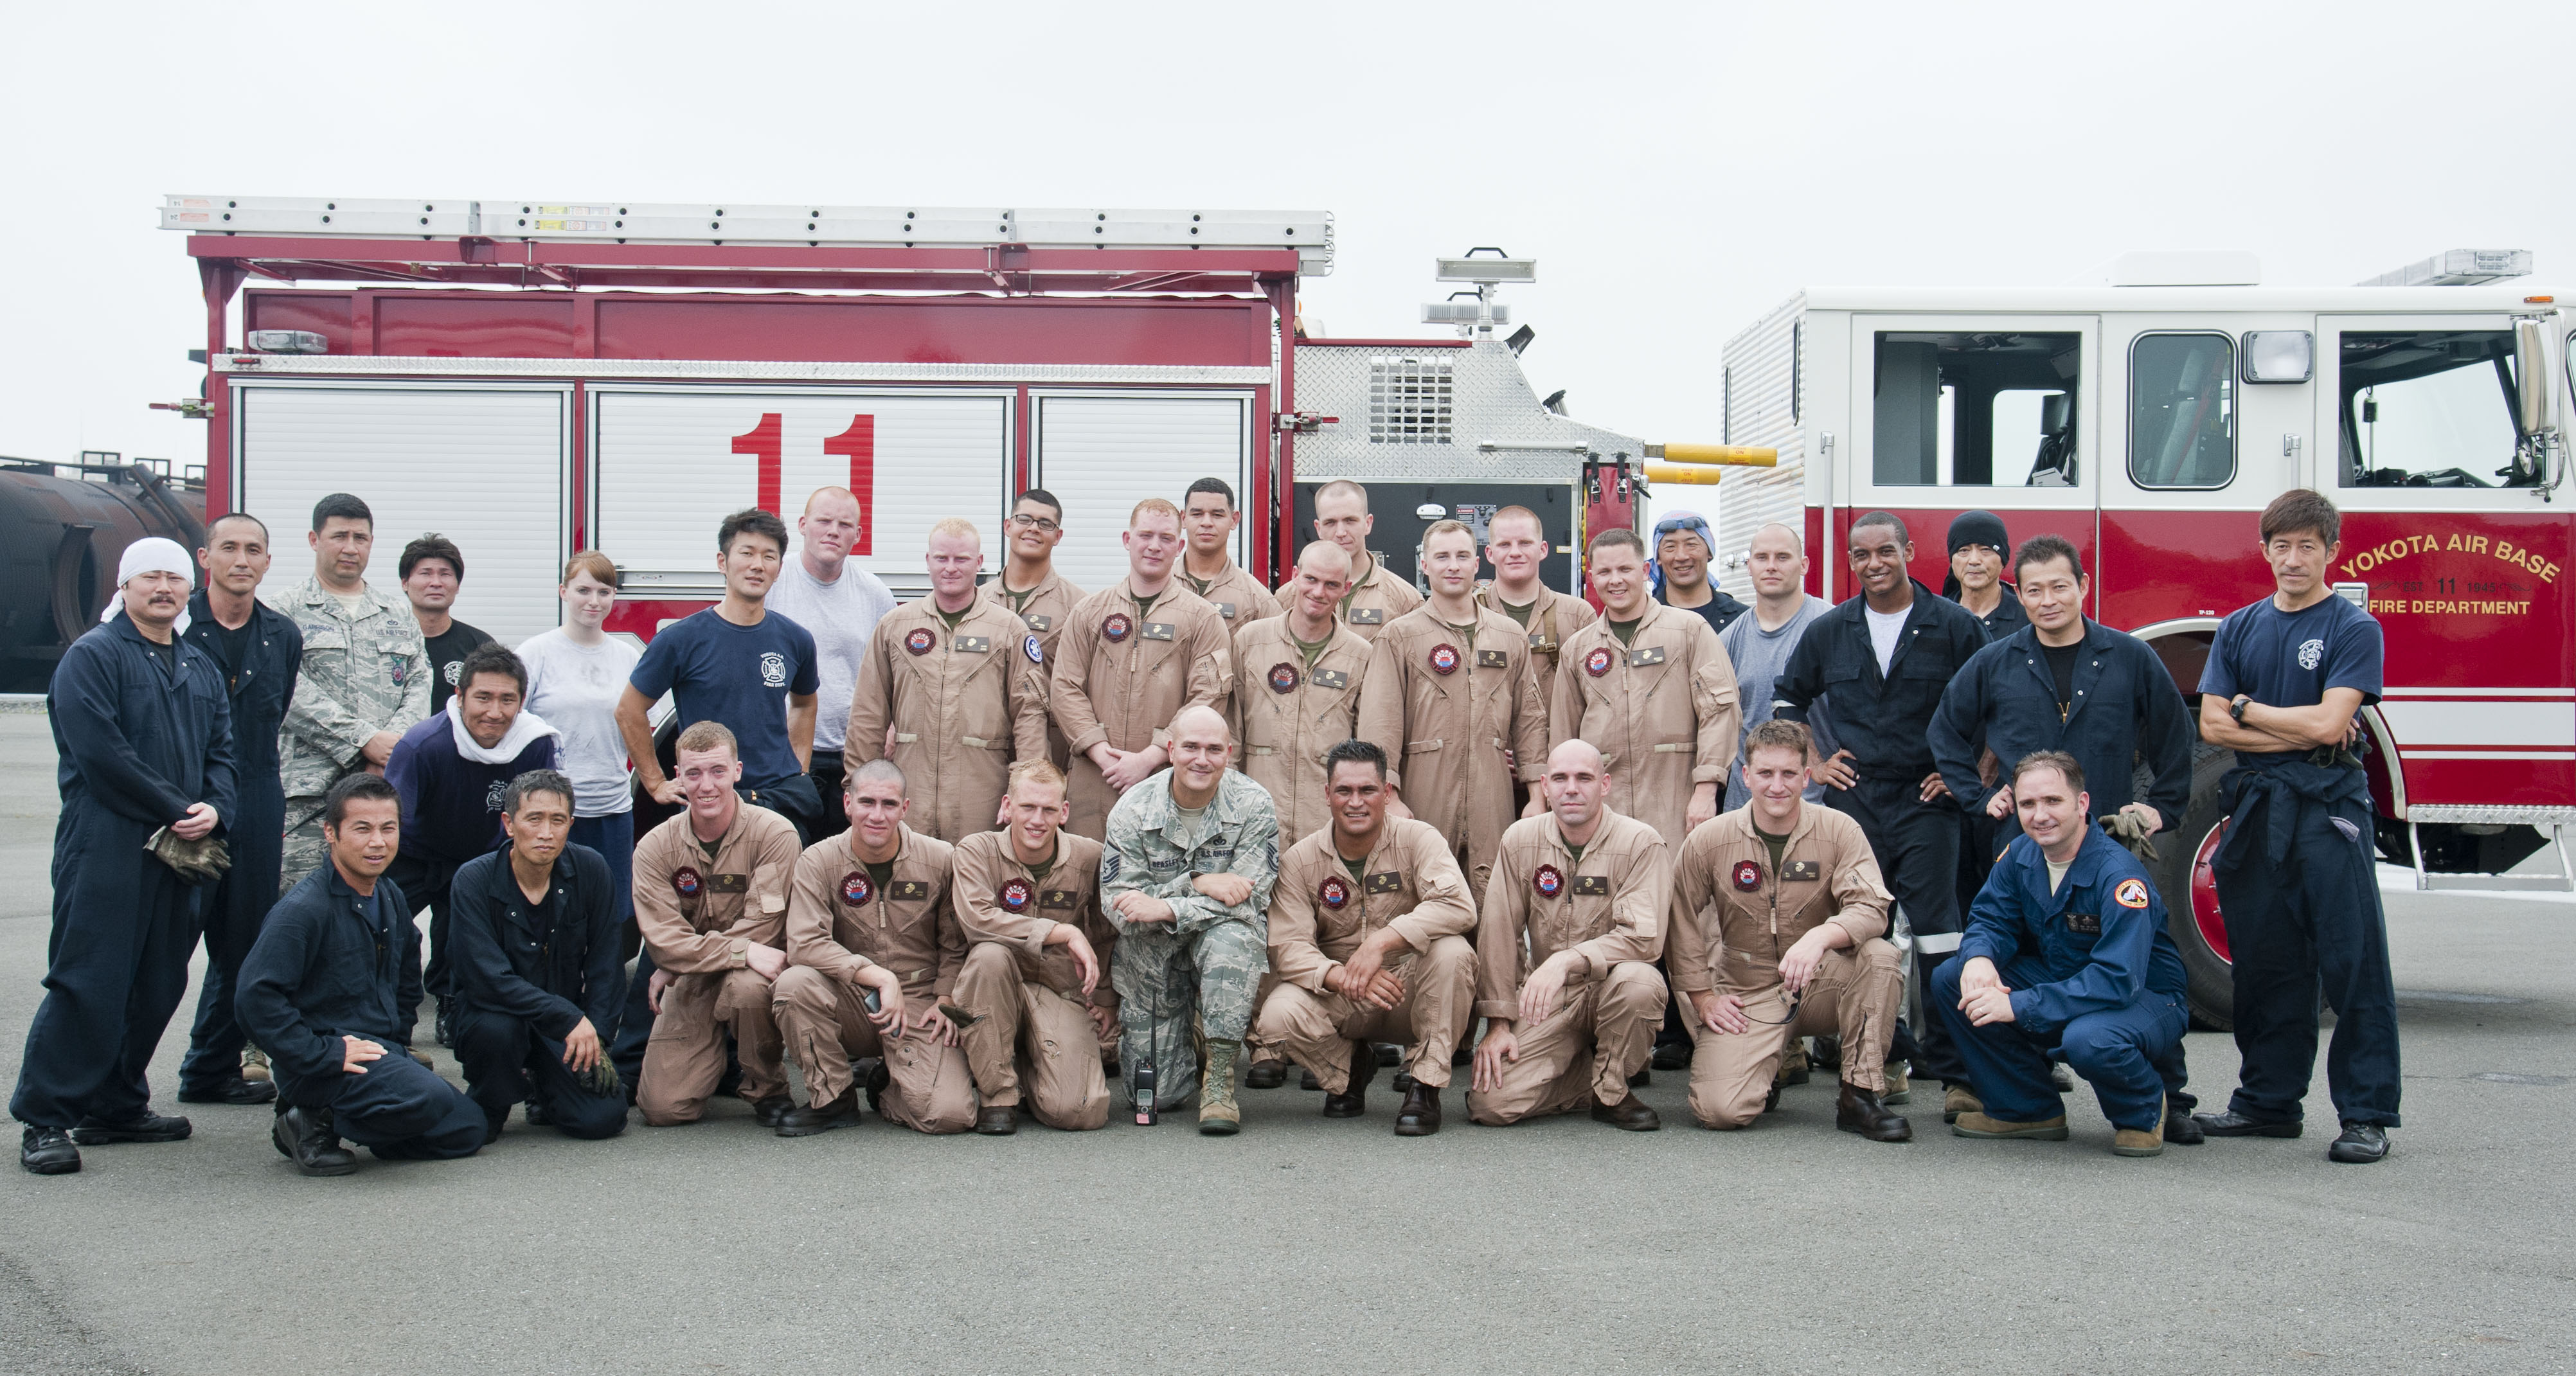 marine corps air station iwakuni firefighters photo details download hi res